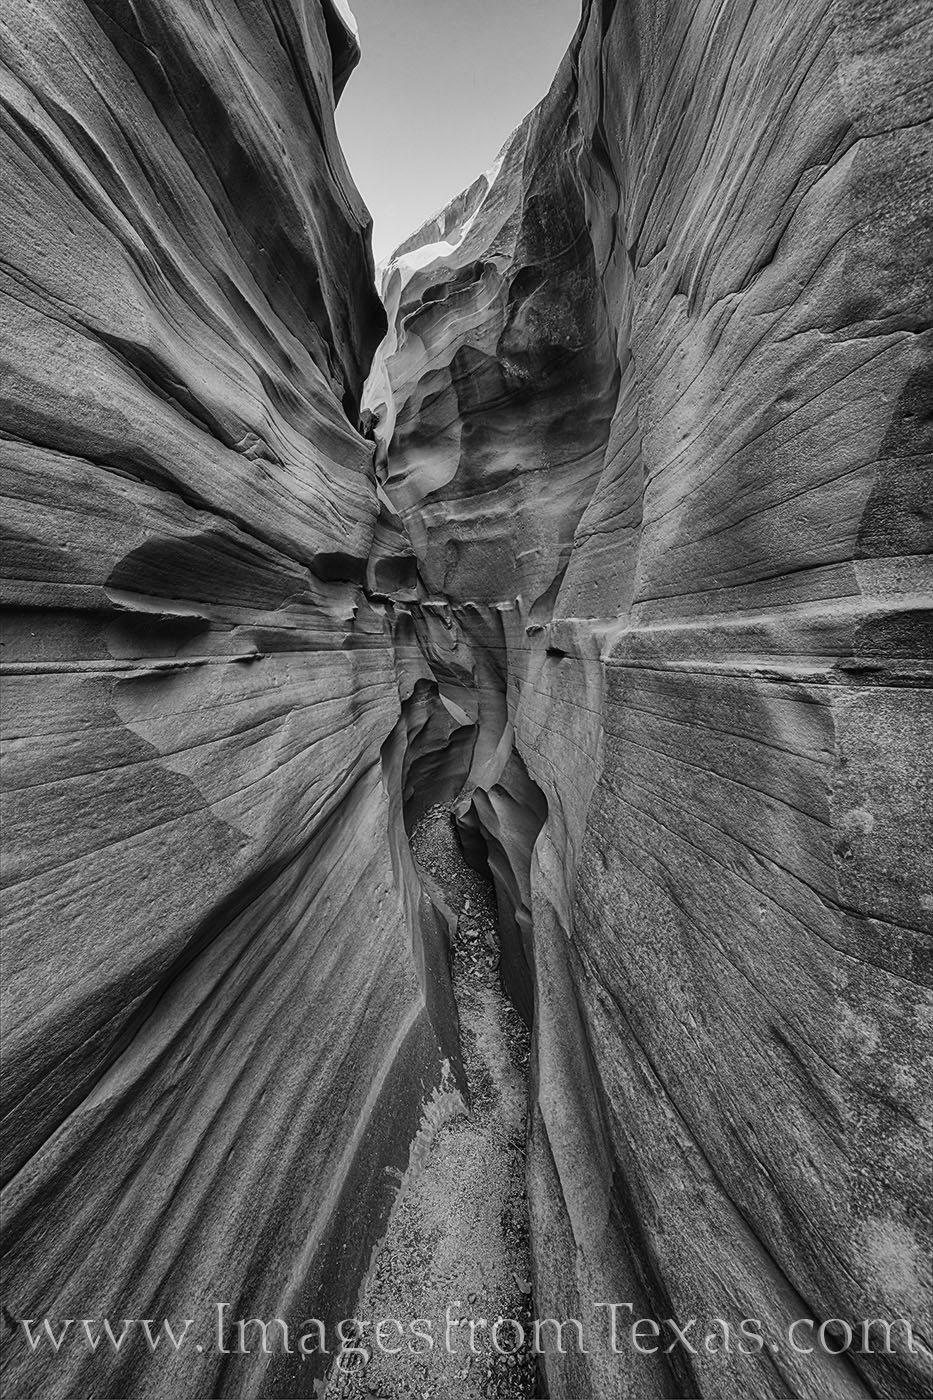 black and white, palo duro canyon, slot canyon, central utah slot canyon, secret canyon, texas canyons, texas state parks, central utah slot, slot canyons, texas slot canyons, texas hiking, hiking tex, photo